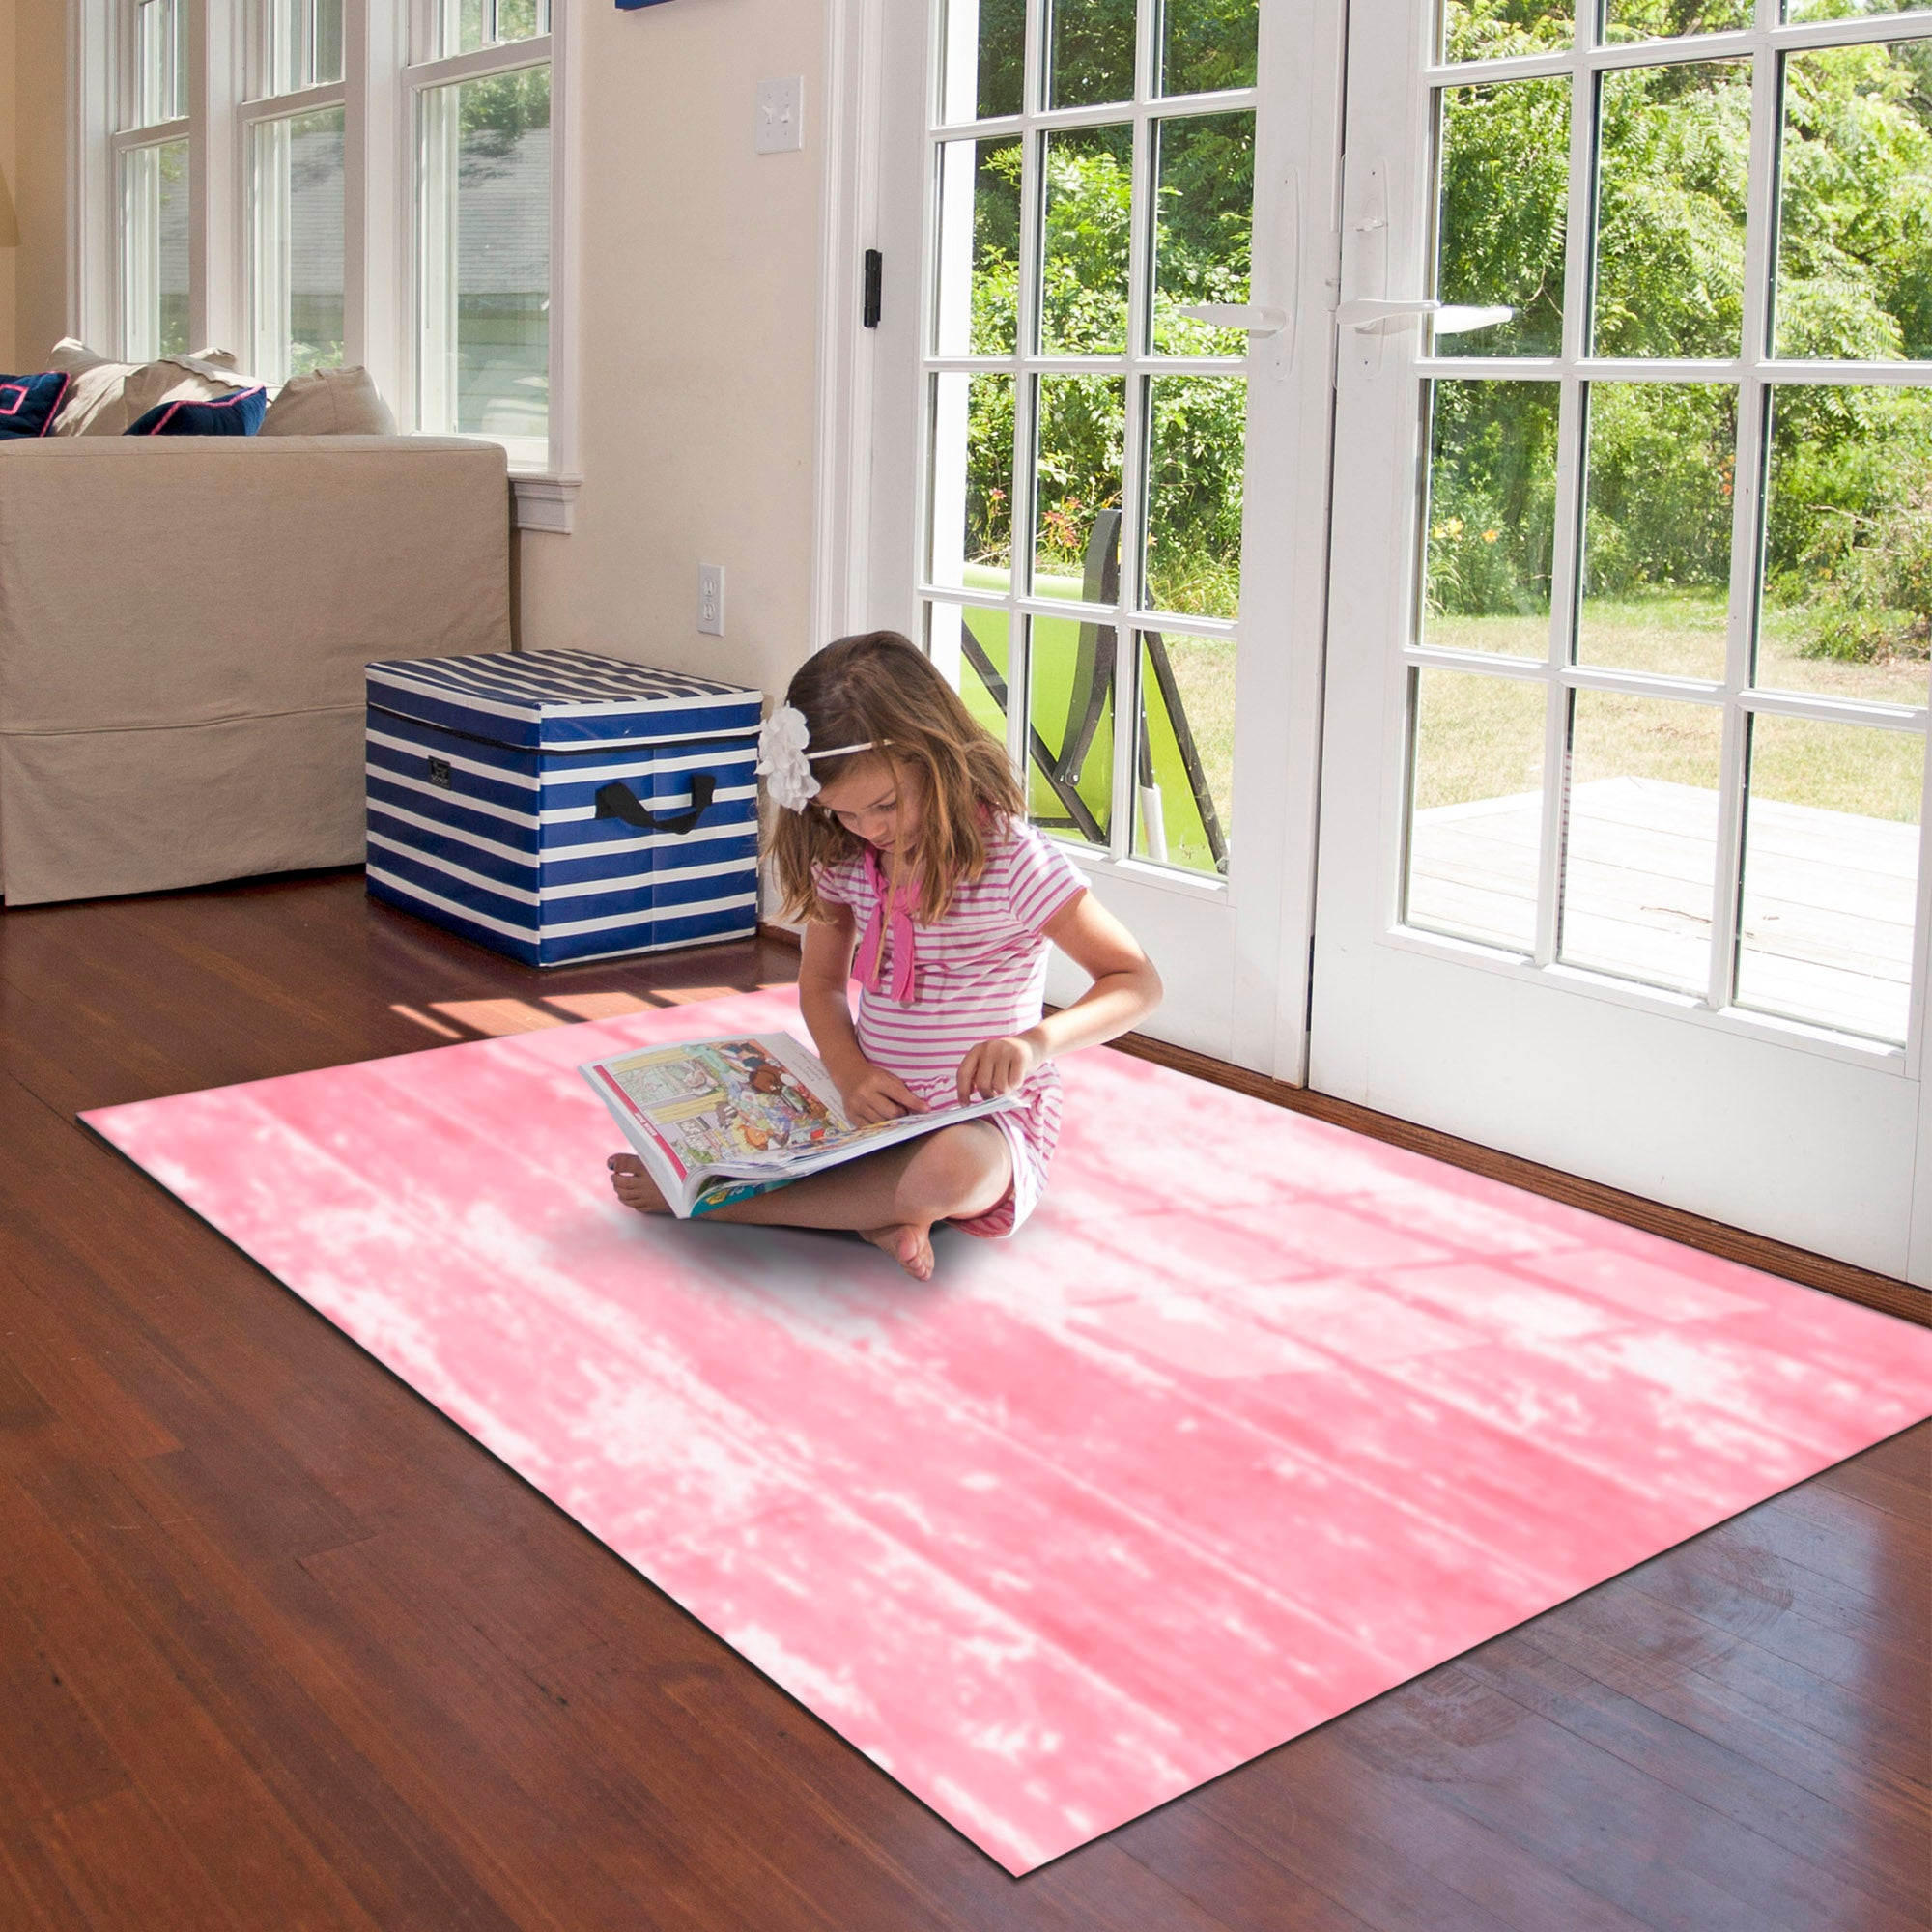 Painted Floor Pink FoFlor Accent Mats